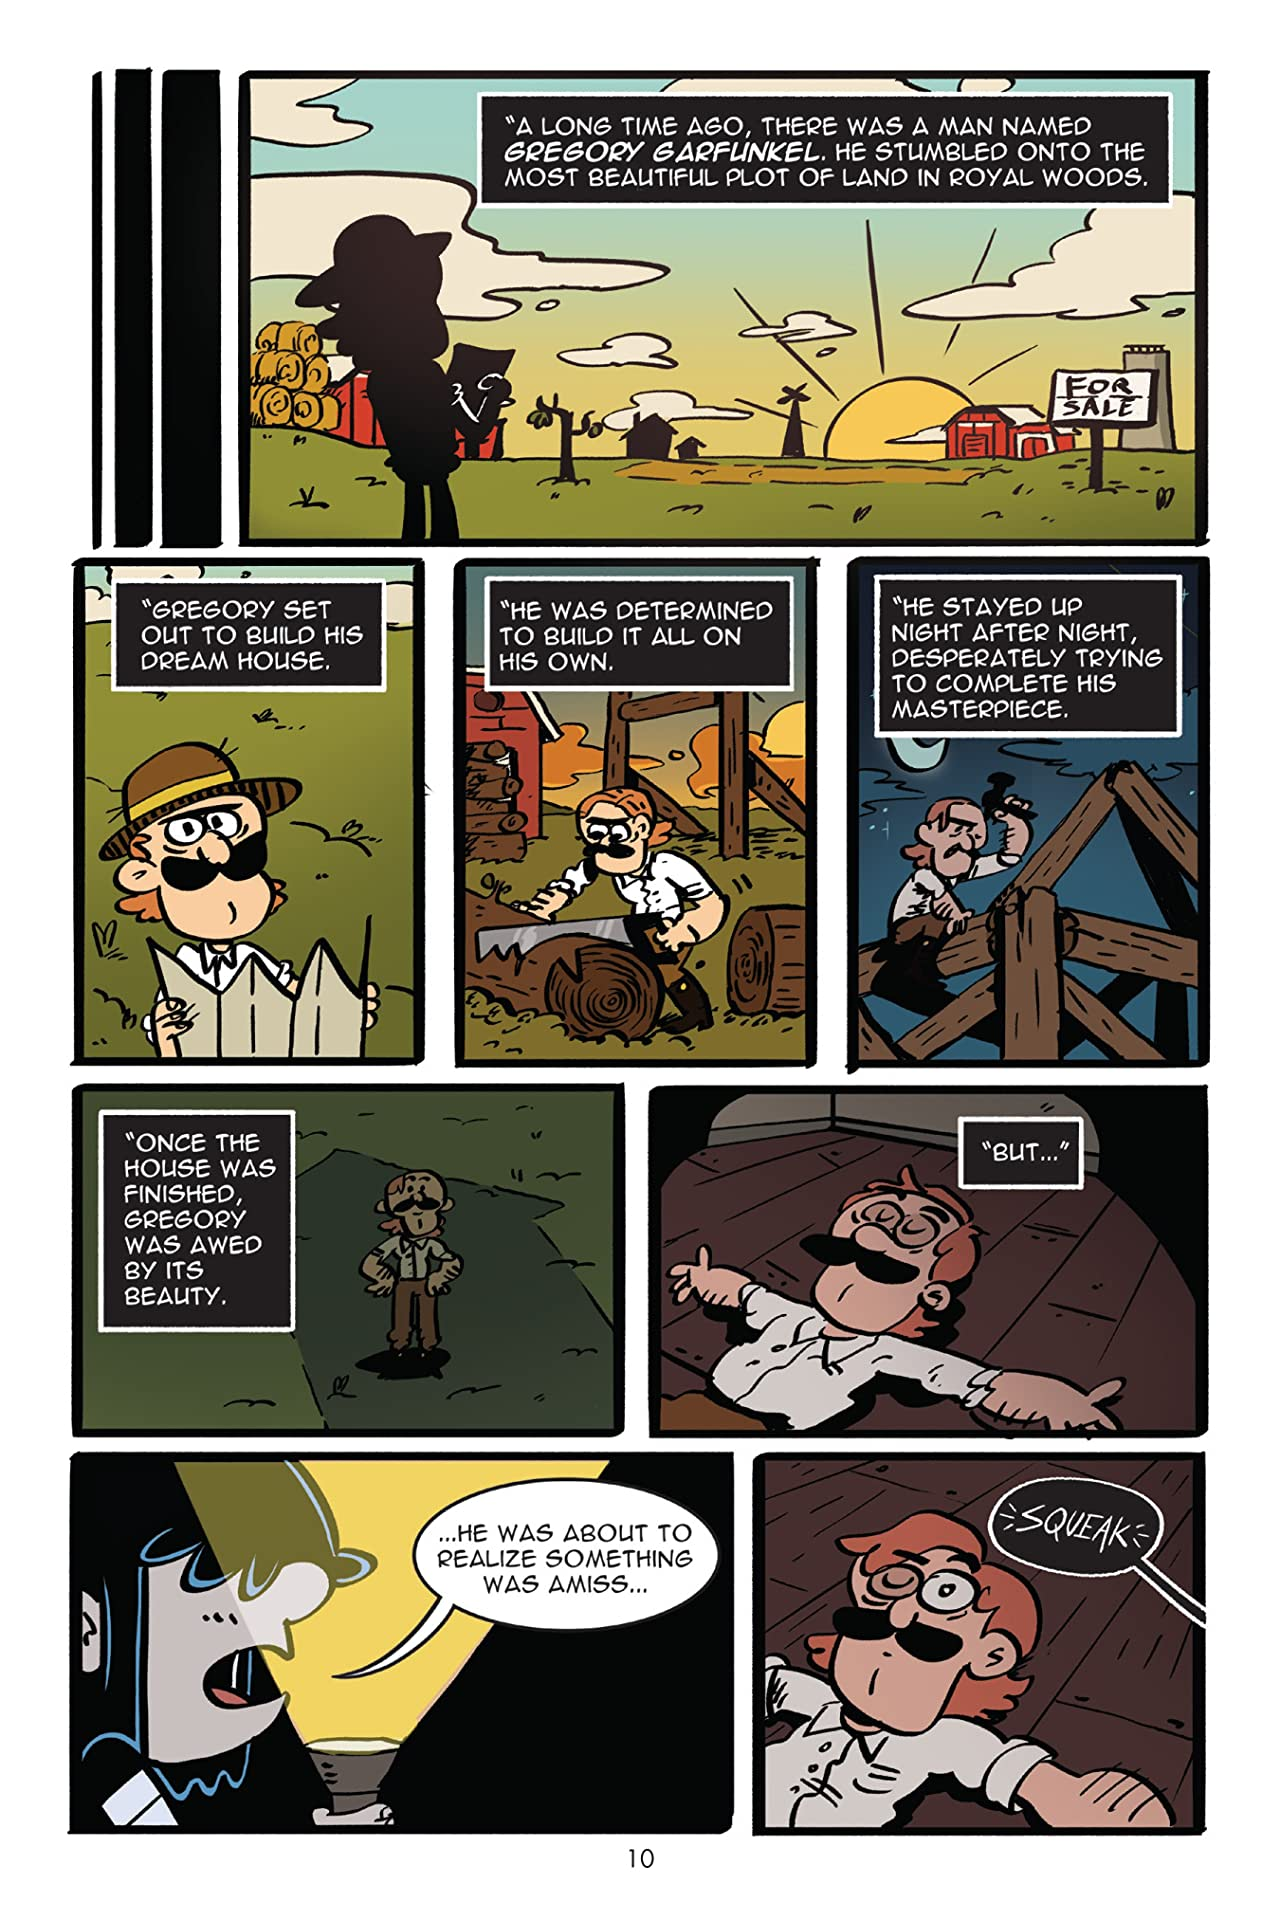 The Loud House Vol. 5: The Man With The Plan